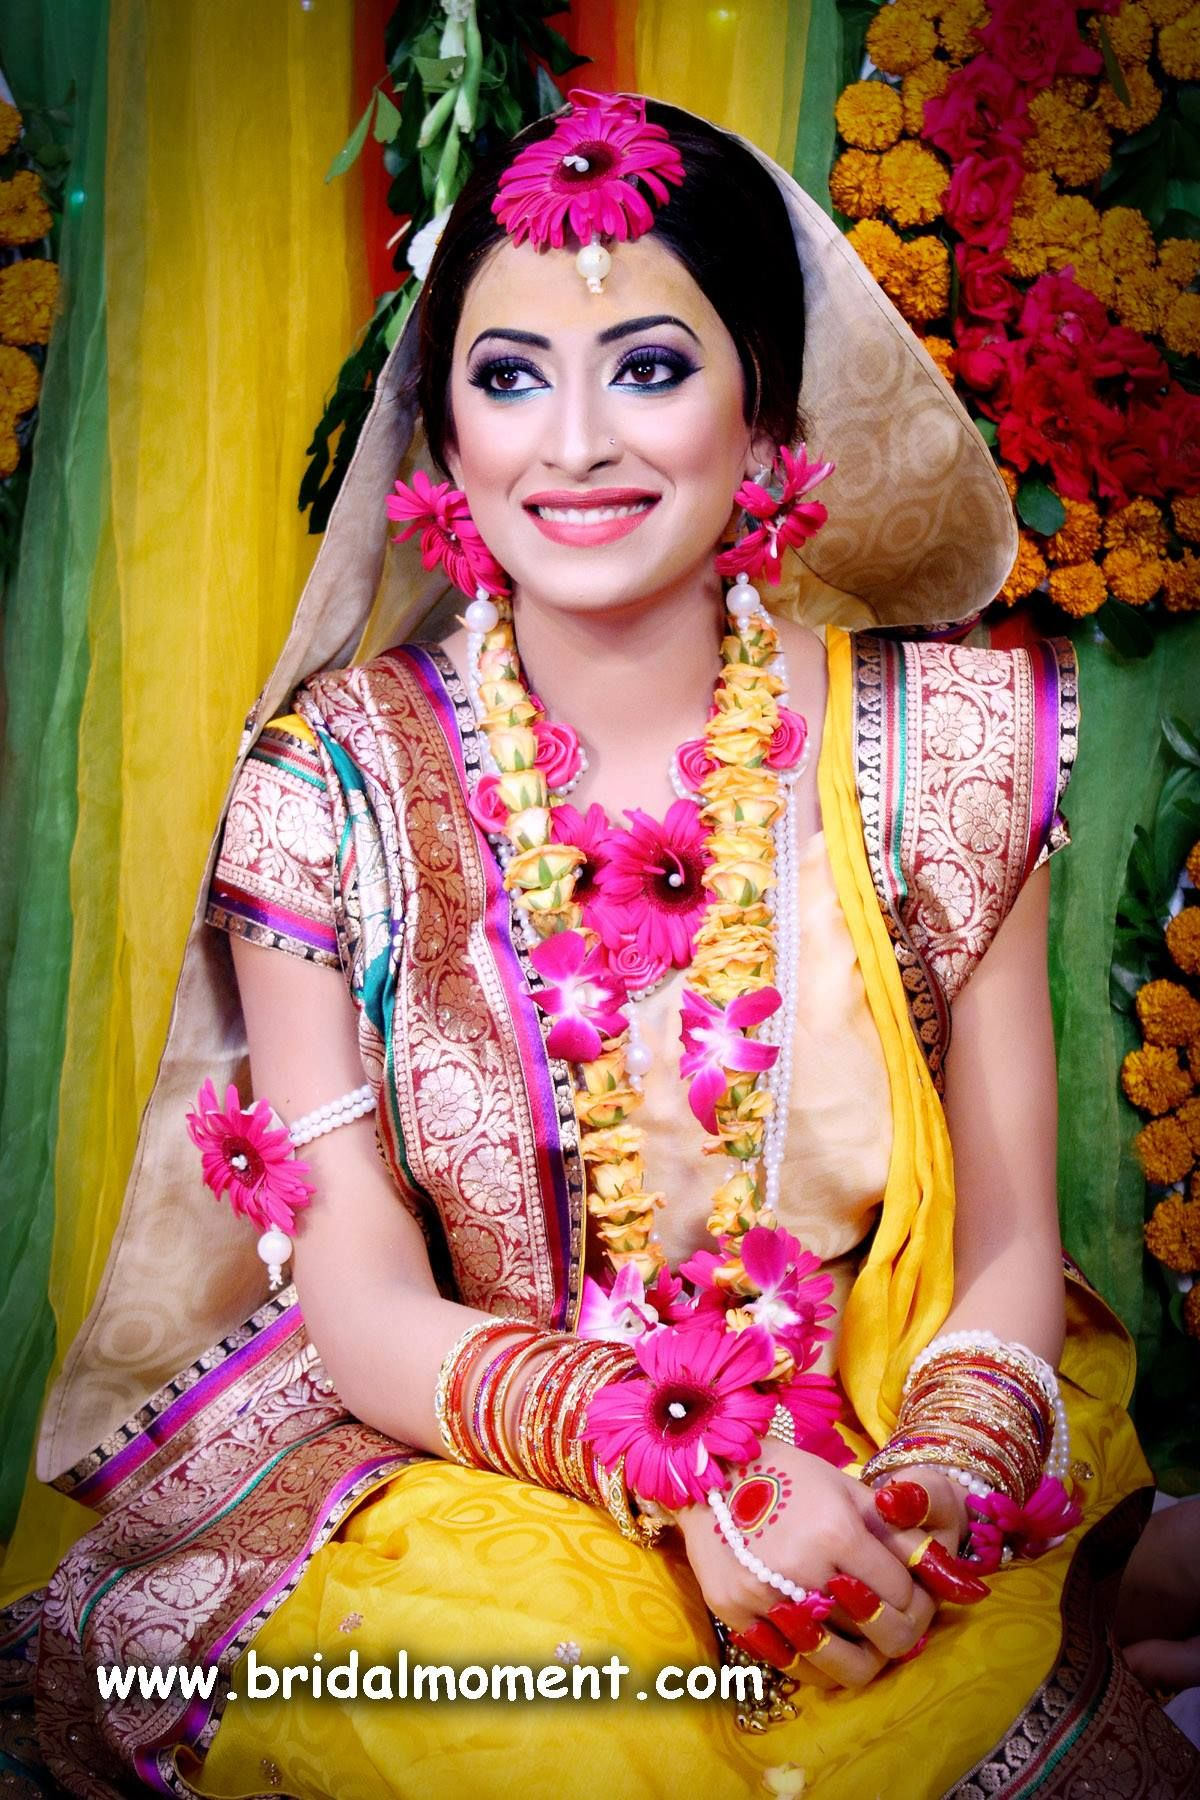 Wedding decoration ideas in bangladesh  Omkar Events omkarevents on Pinterest